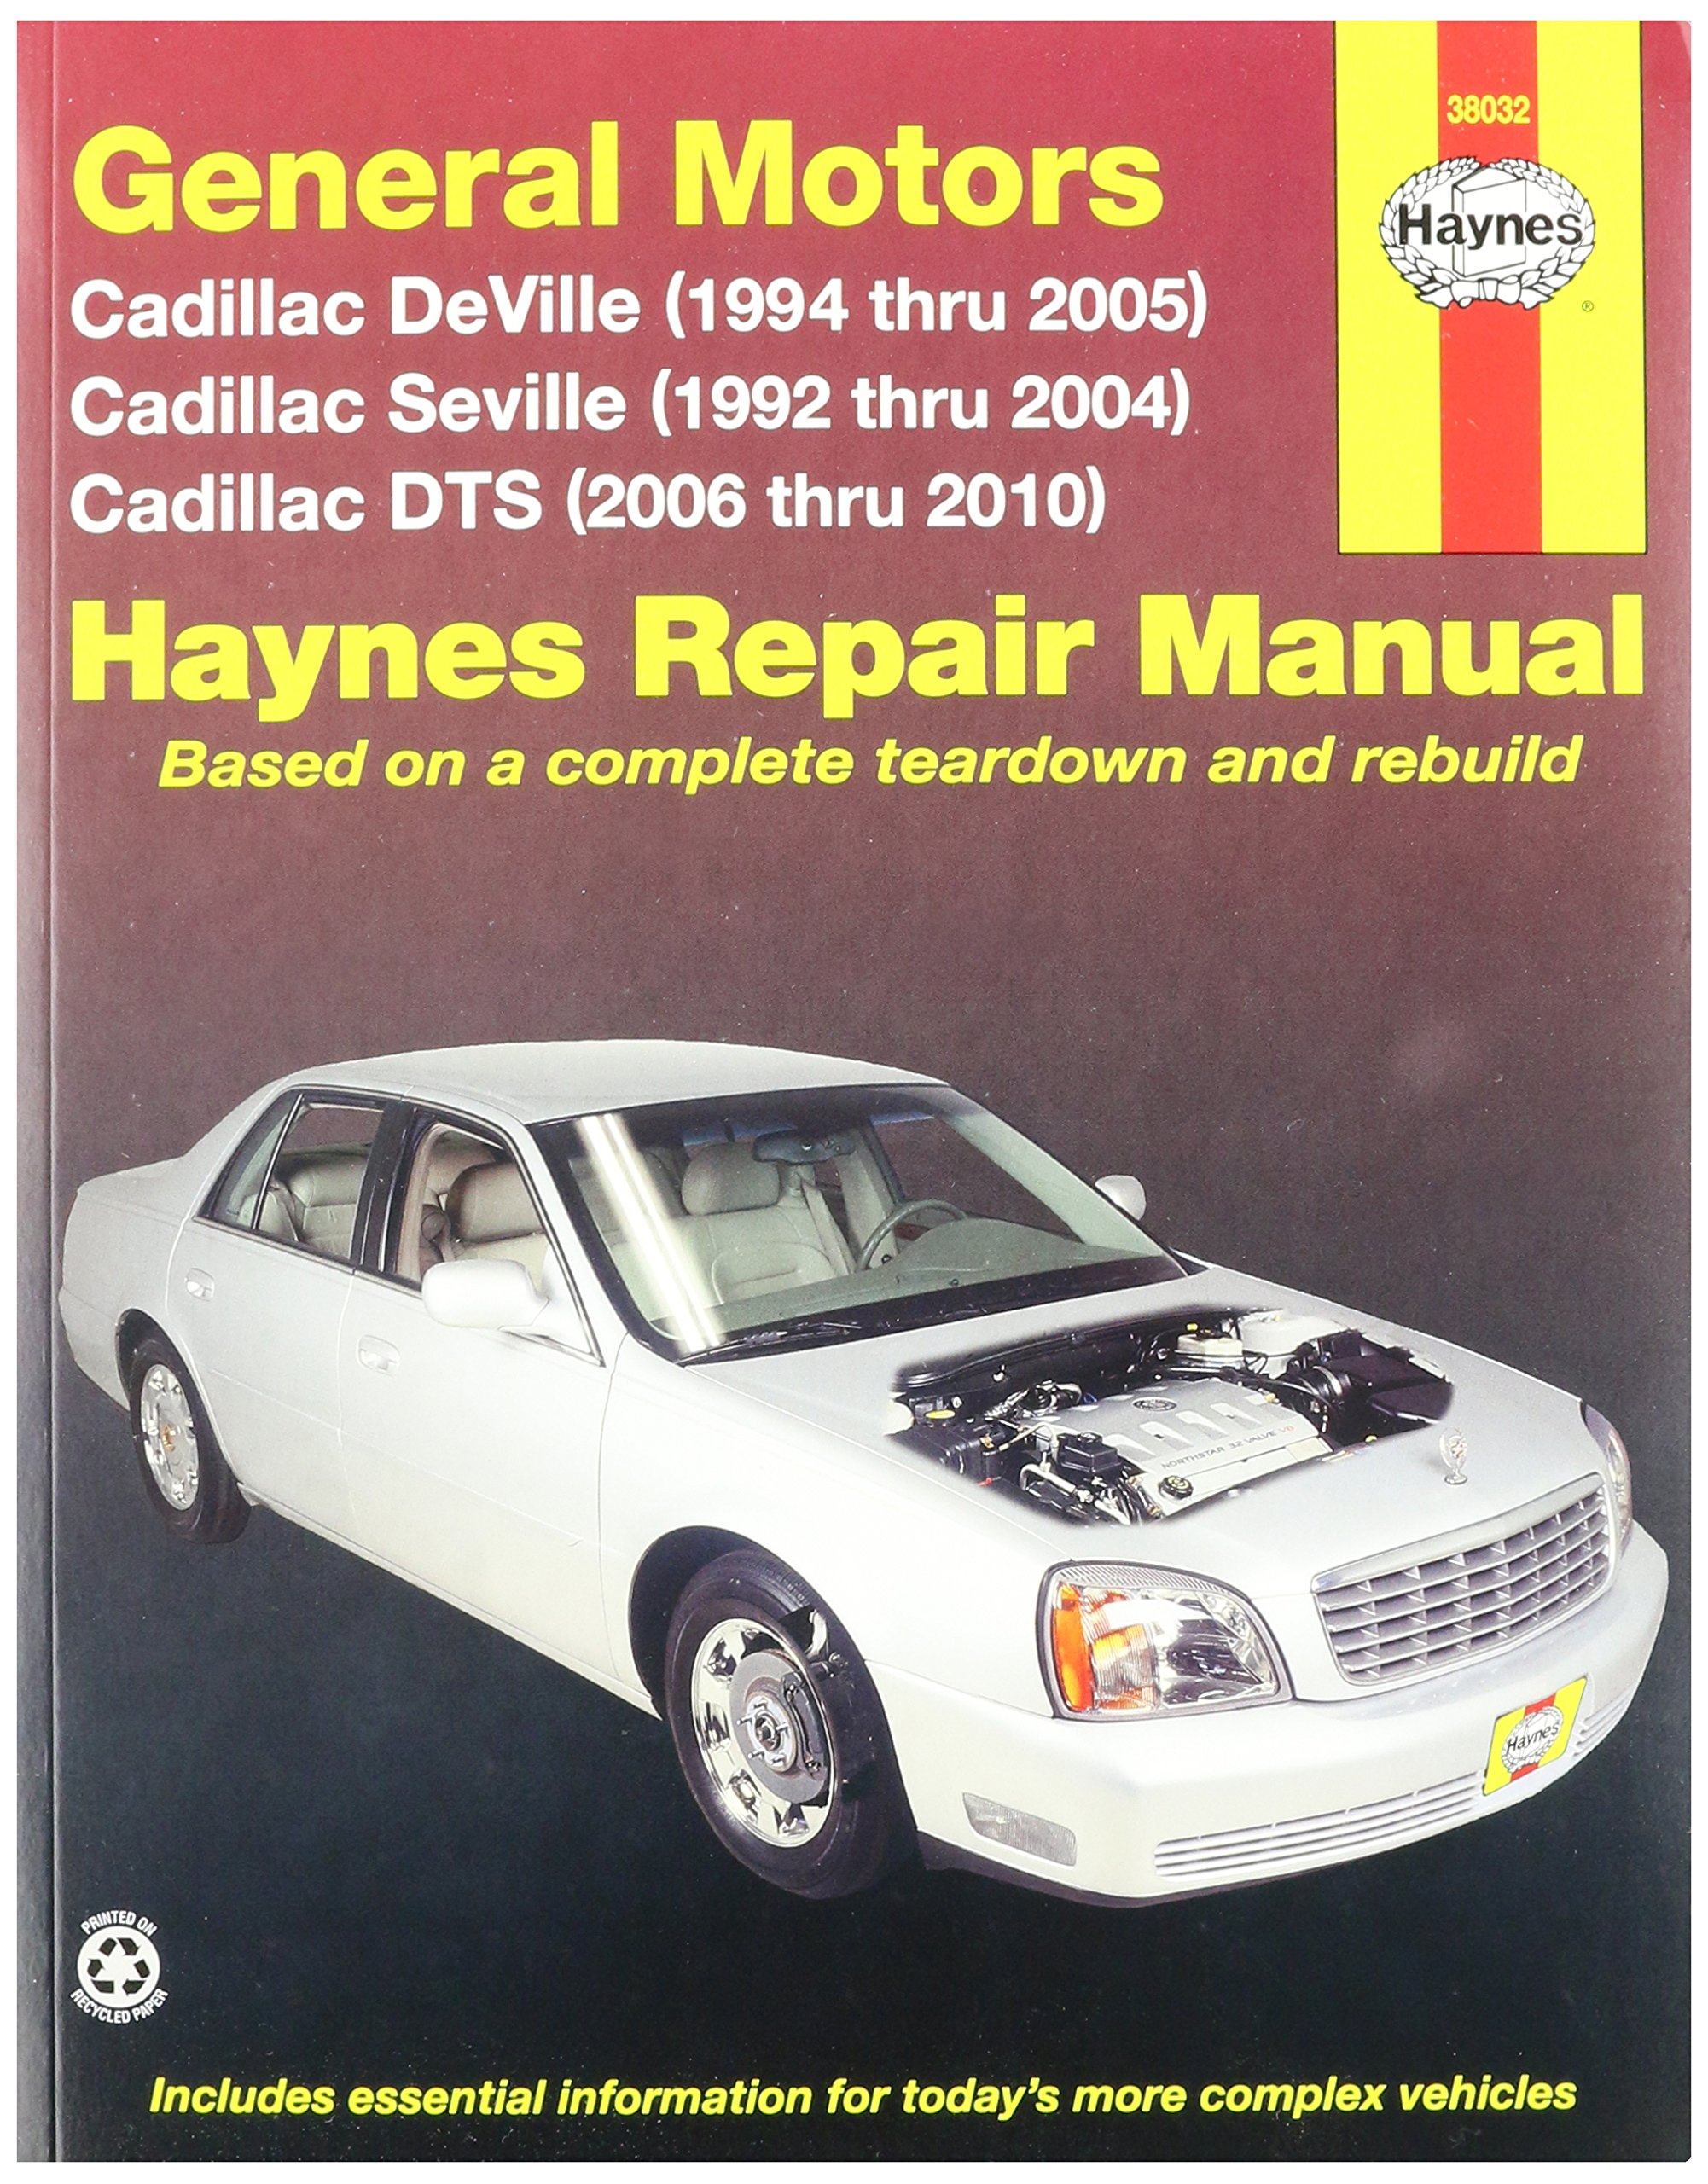 haynes general motors cadillac dts deville and seville 92 10 manual 38032 0038345380327 amazon com books haynes general motors cadillac dts